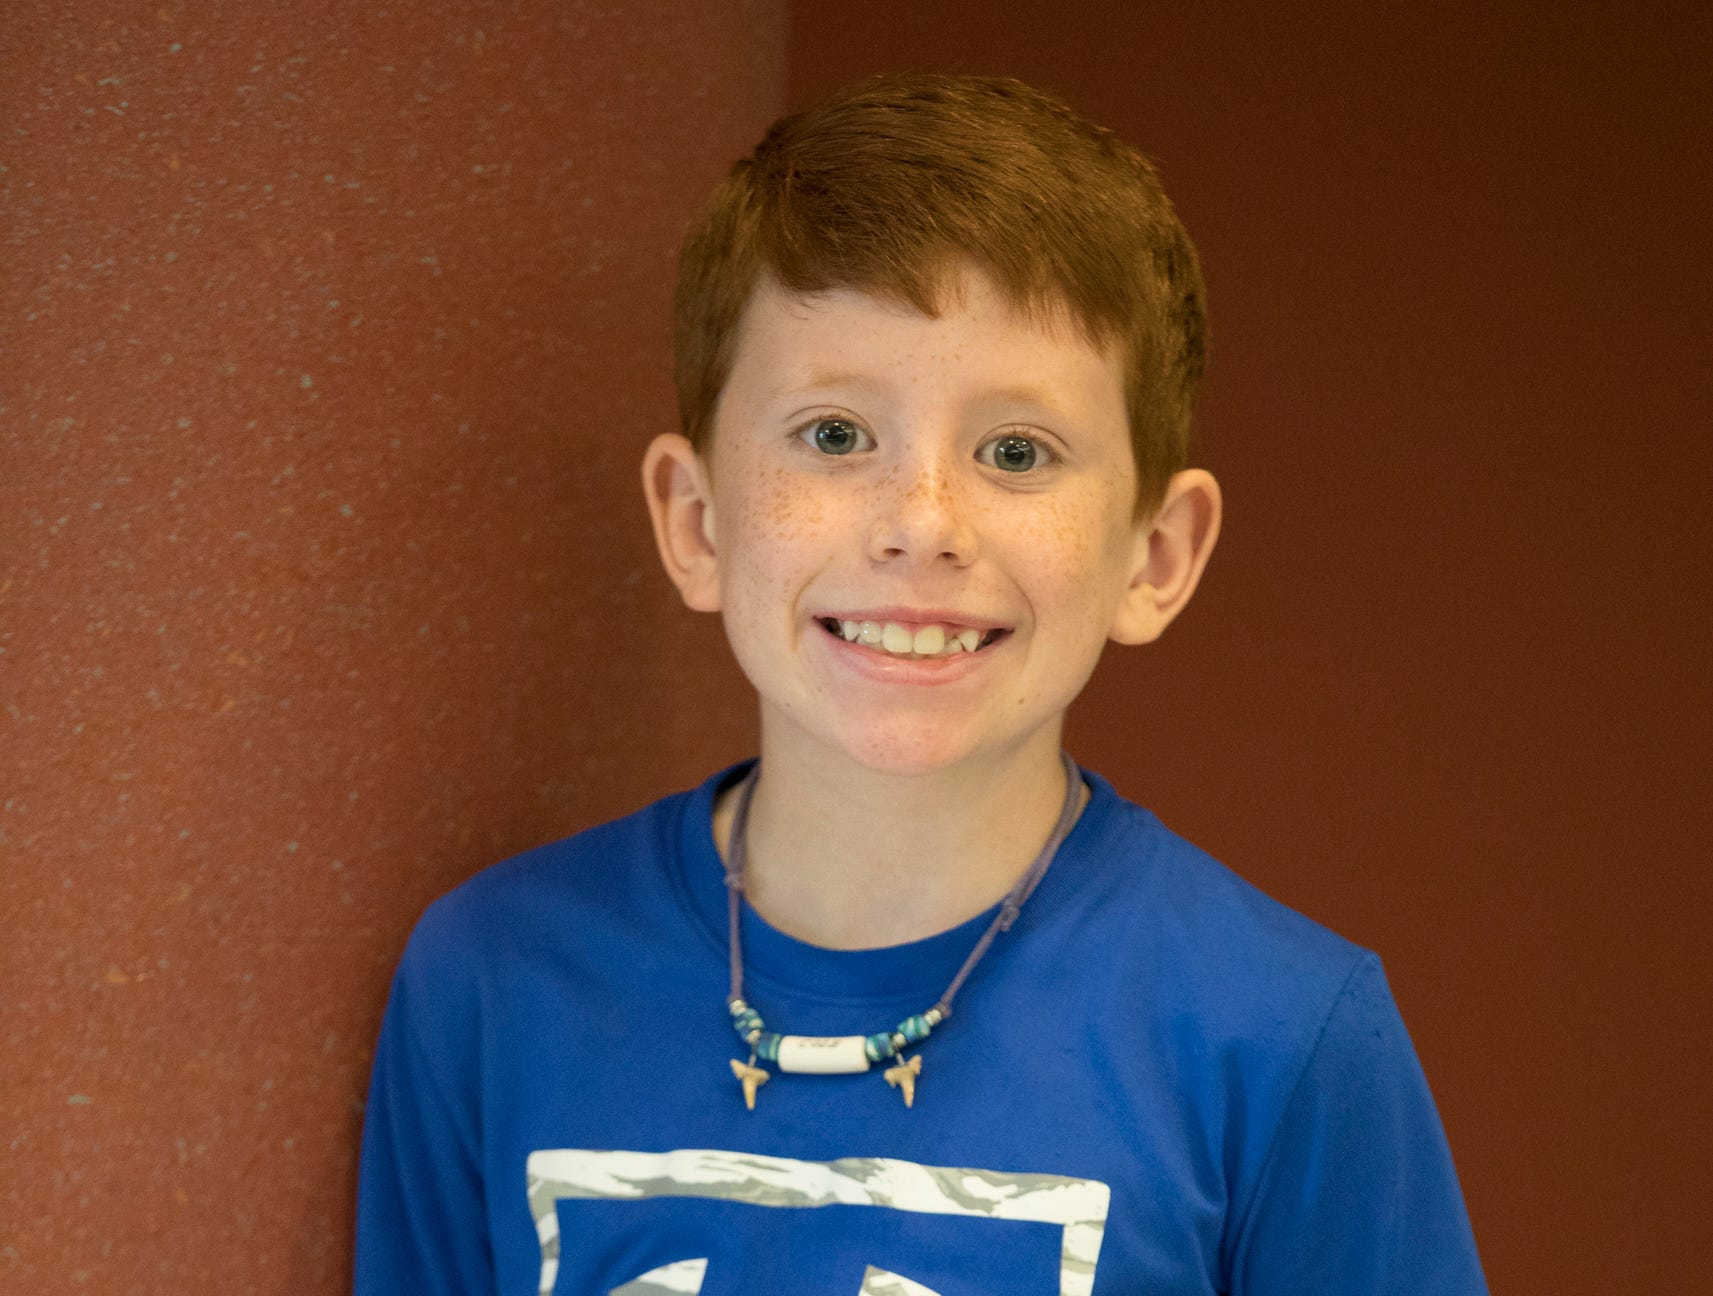 Cole Leasure, 9, Panther Power. Project: You and Your Dog